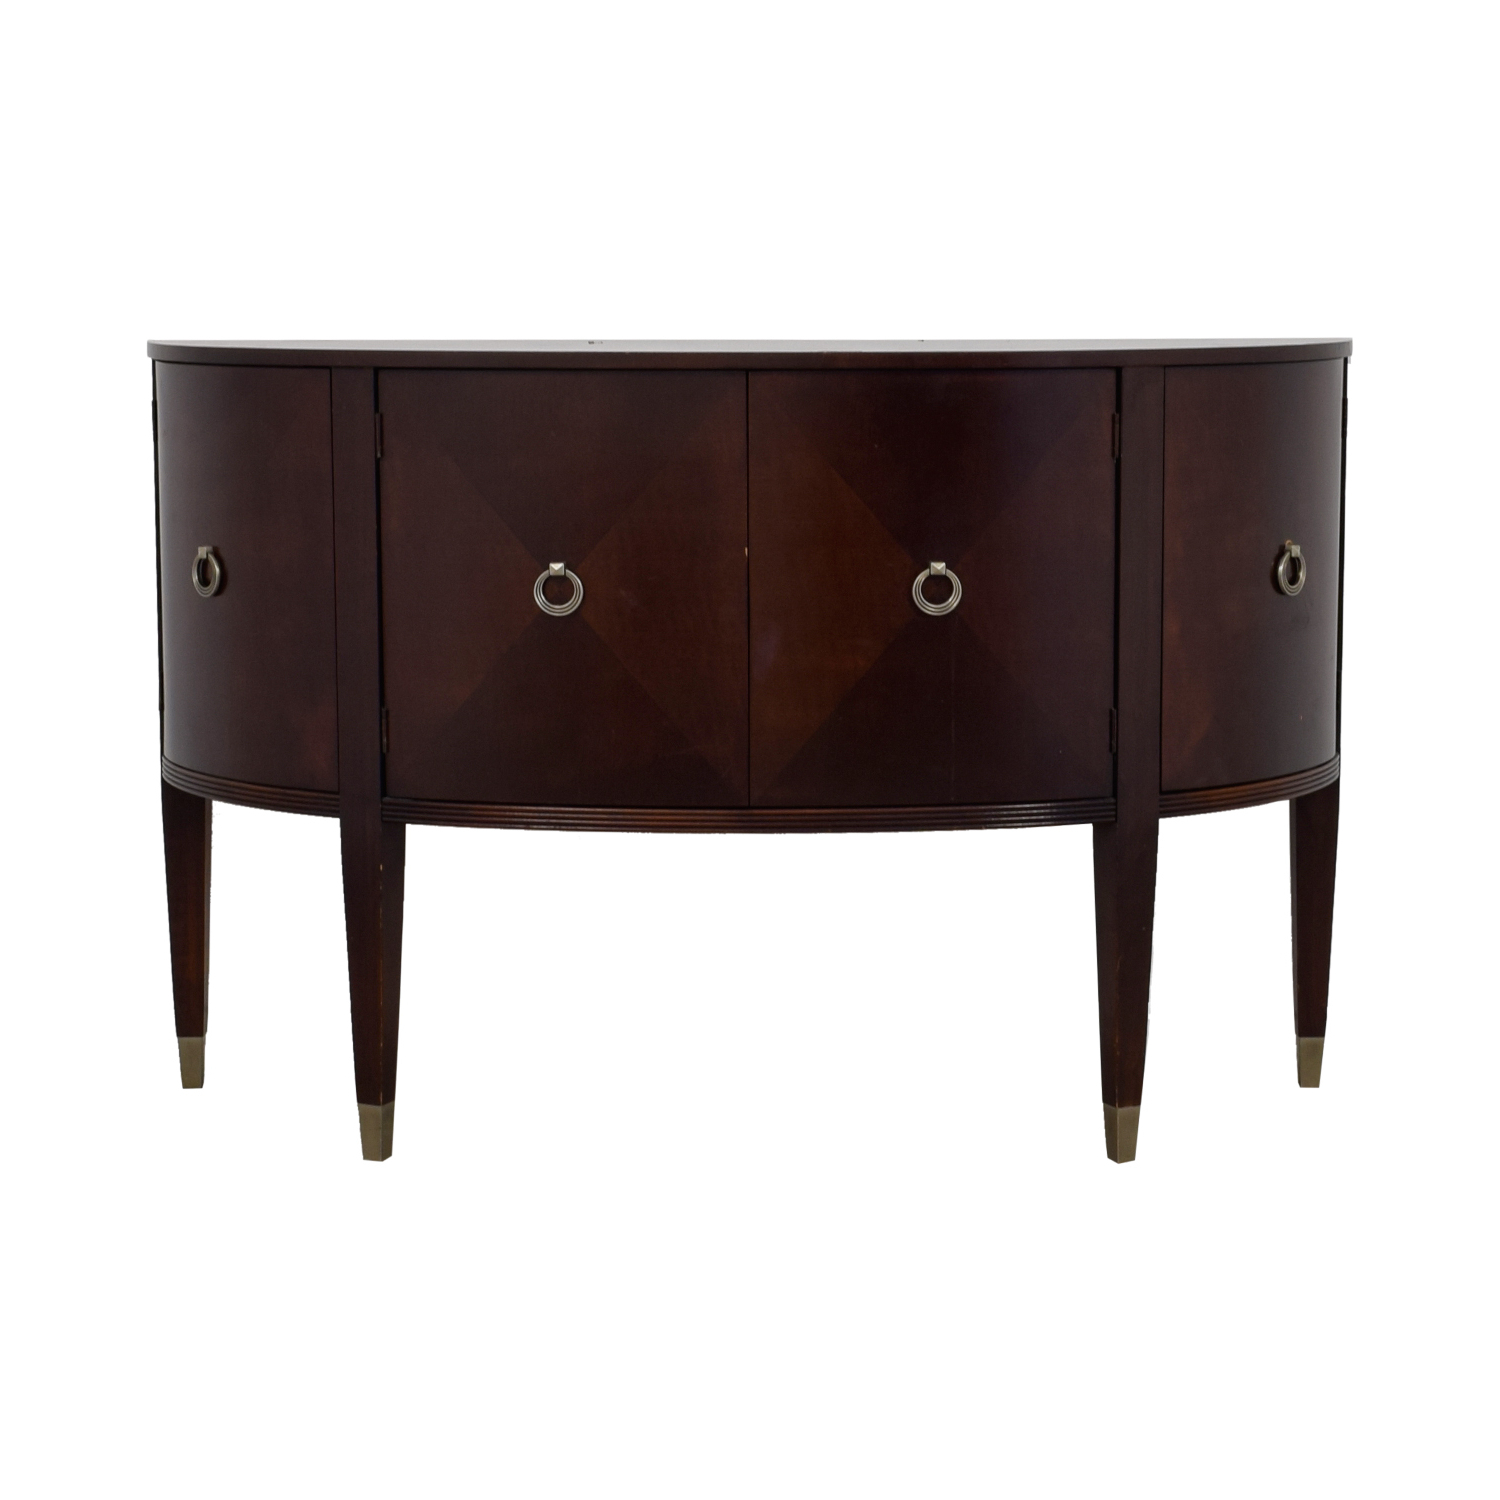 [%74% Off – Ethan Allen Ethan Allen Wood Buffet Console Table / Storage With Famous Ethan Console Tables|Ethan Console Tables Intended For Well Known 74% Off – Ethan Allen Ethan Allen Wood Buffet Console Table / Storage|Most Current Ethan Console Tables Pertaining To 74% Off – Ethan Allen Ethan Allen Wood Buffet Console Table / Storage|Favorite 74% Off – Ethan Allen Ethan Allen Wood Buffet Console Table / Storage Inside Ethan Console Tables%] (View 1 of 20)